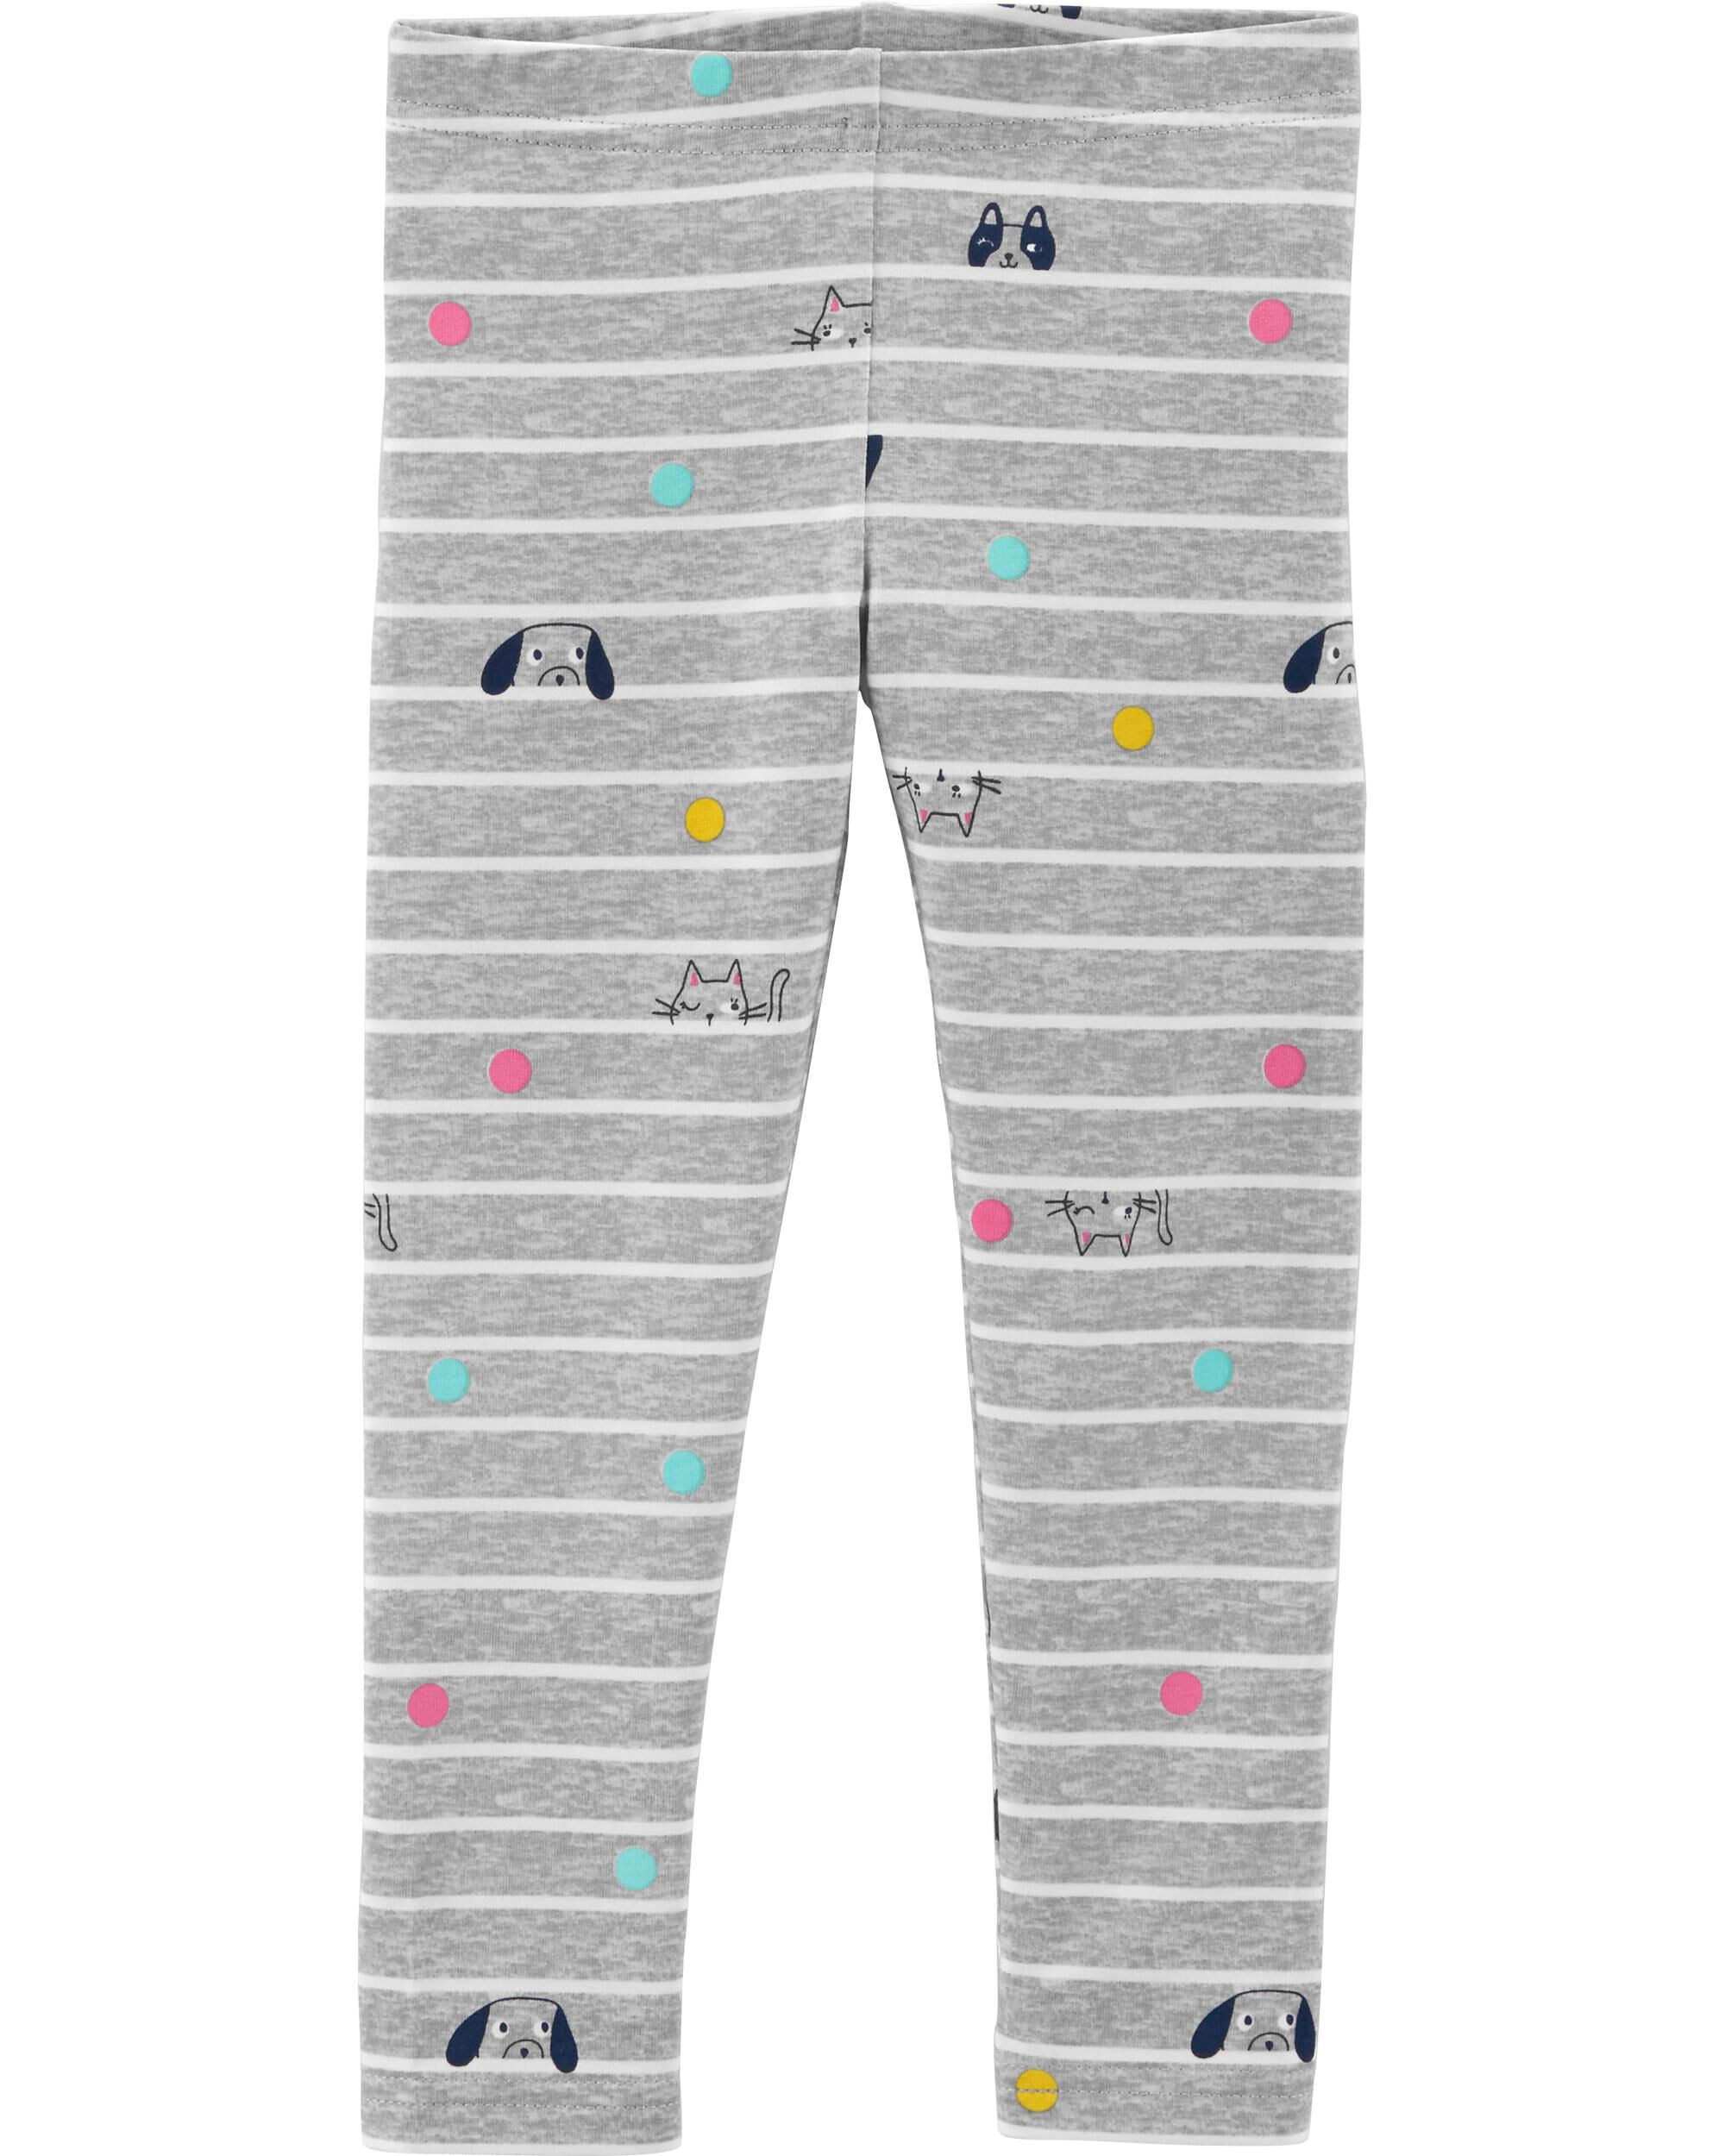 0bb9f3eadf2e2 Cat & Dog Leggings. Loading zoom